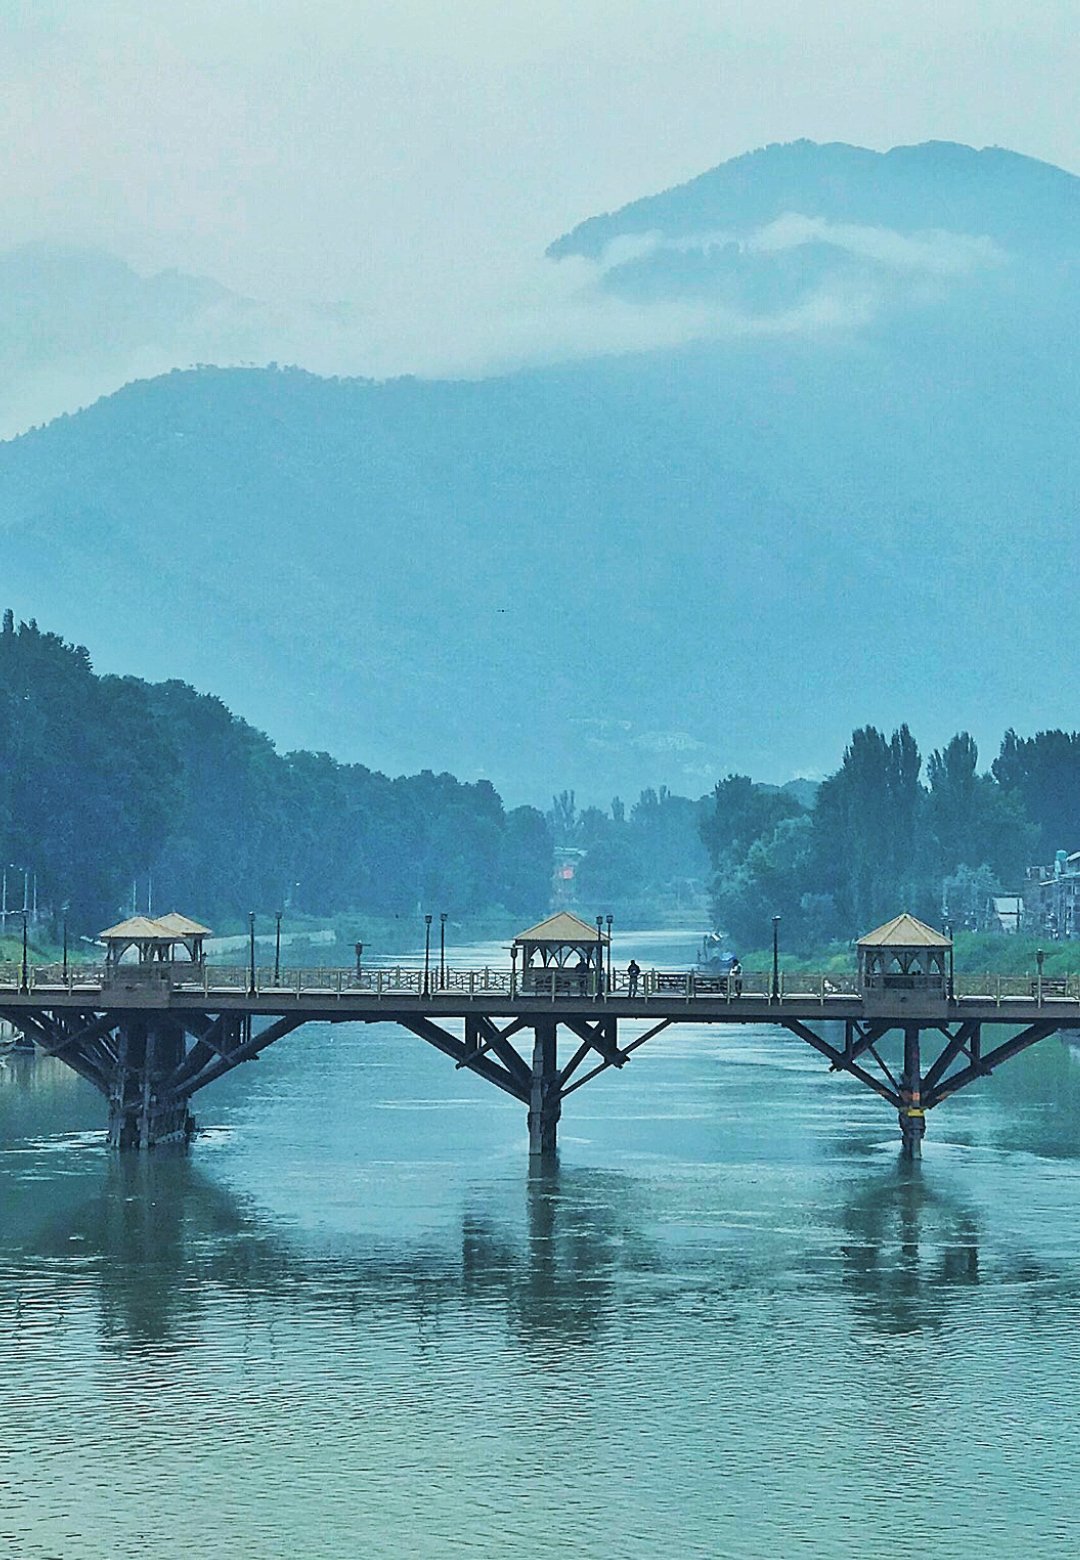 Zero Bridge, Srinagar| Manish Gulati| Srinagar, Jammu and Kashmir| STIR